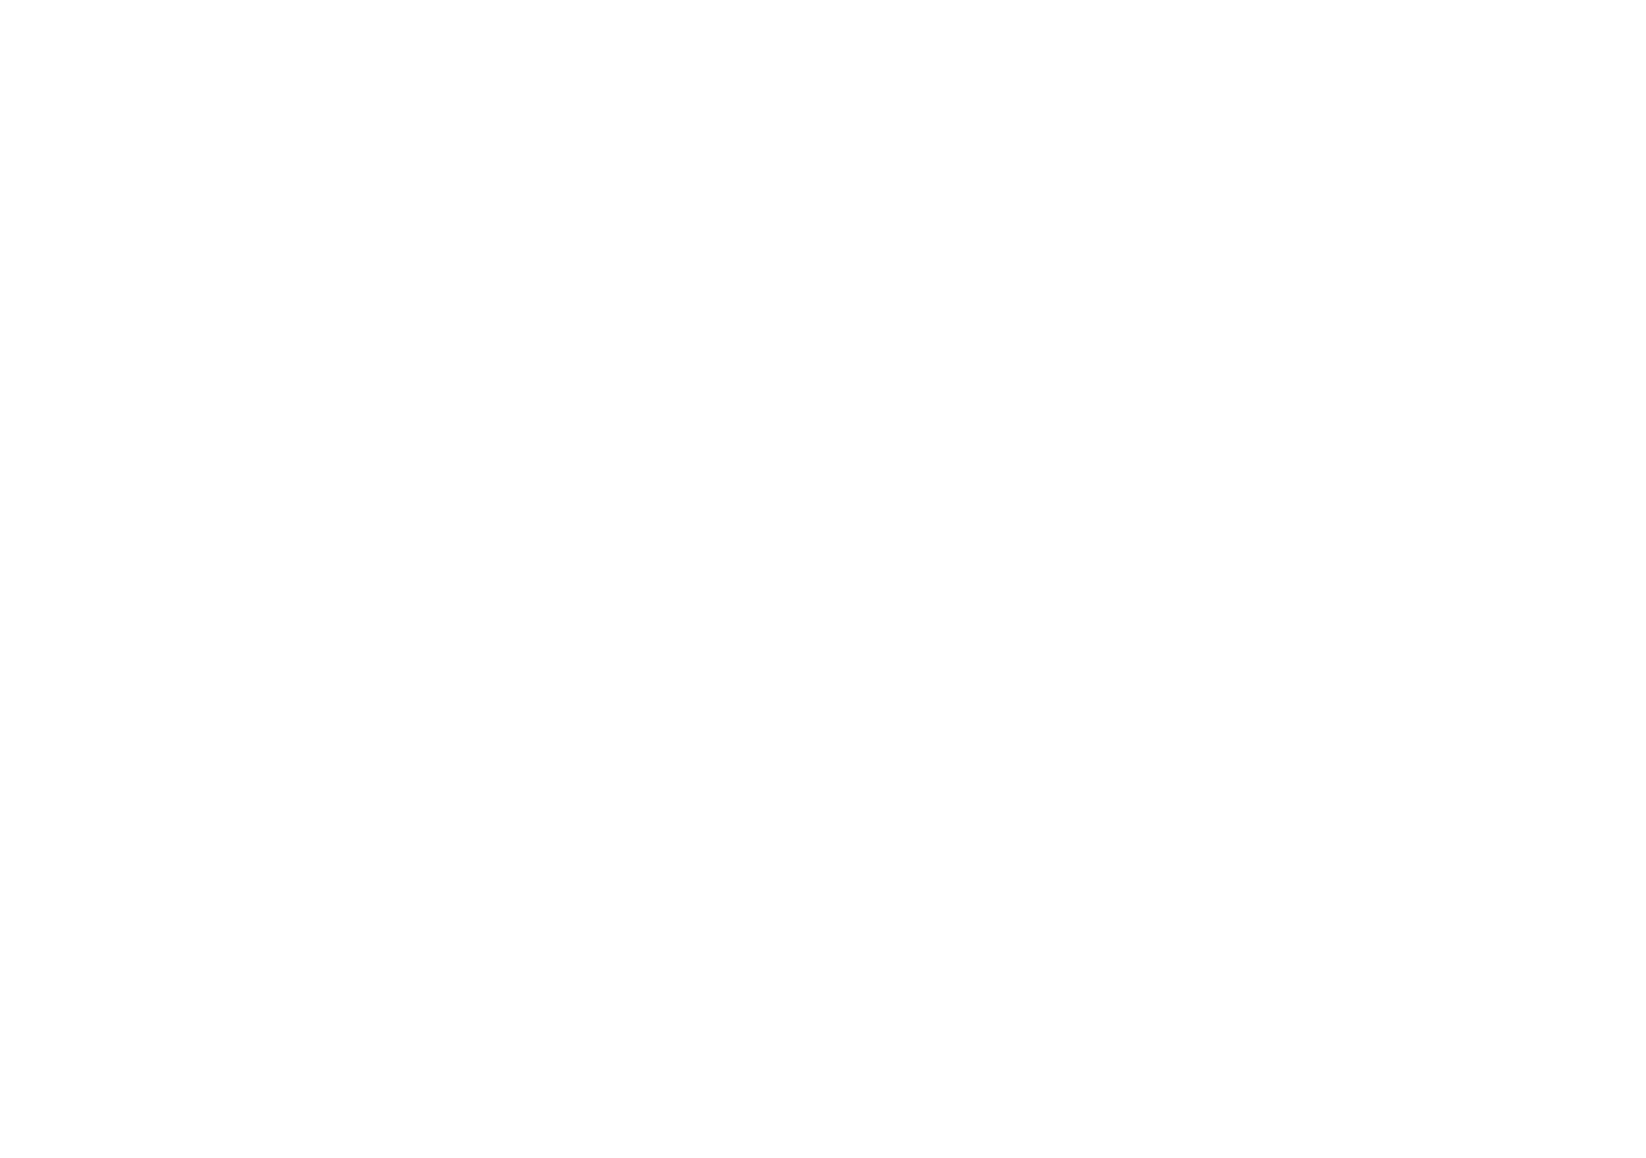 unsecured business lines logo